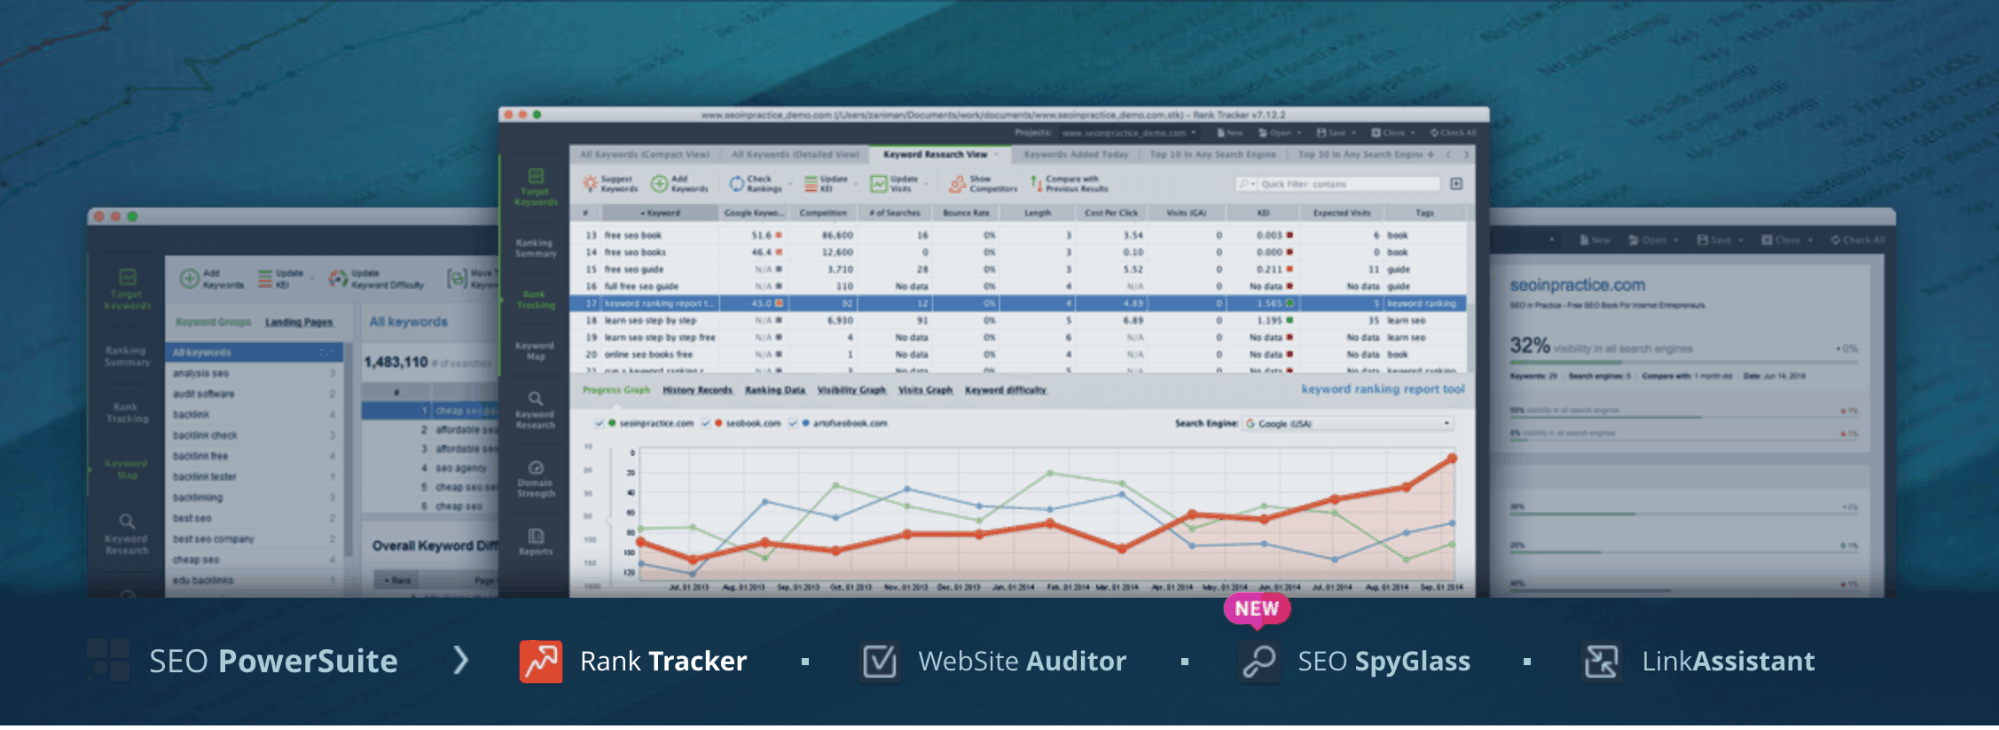 SEO Powersuite Sample Dashboard